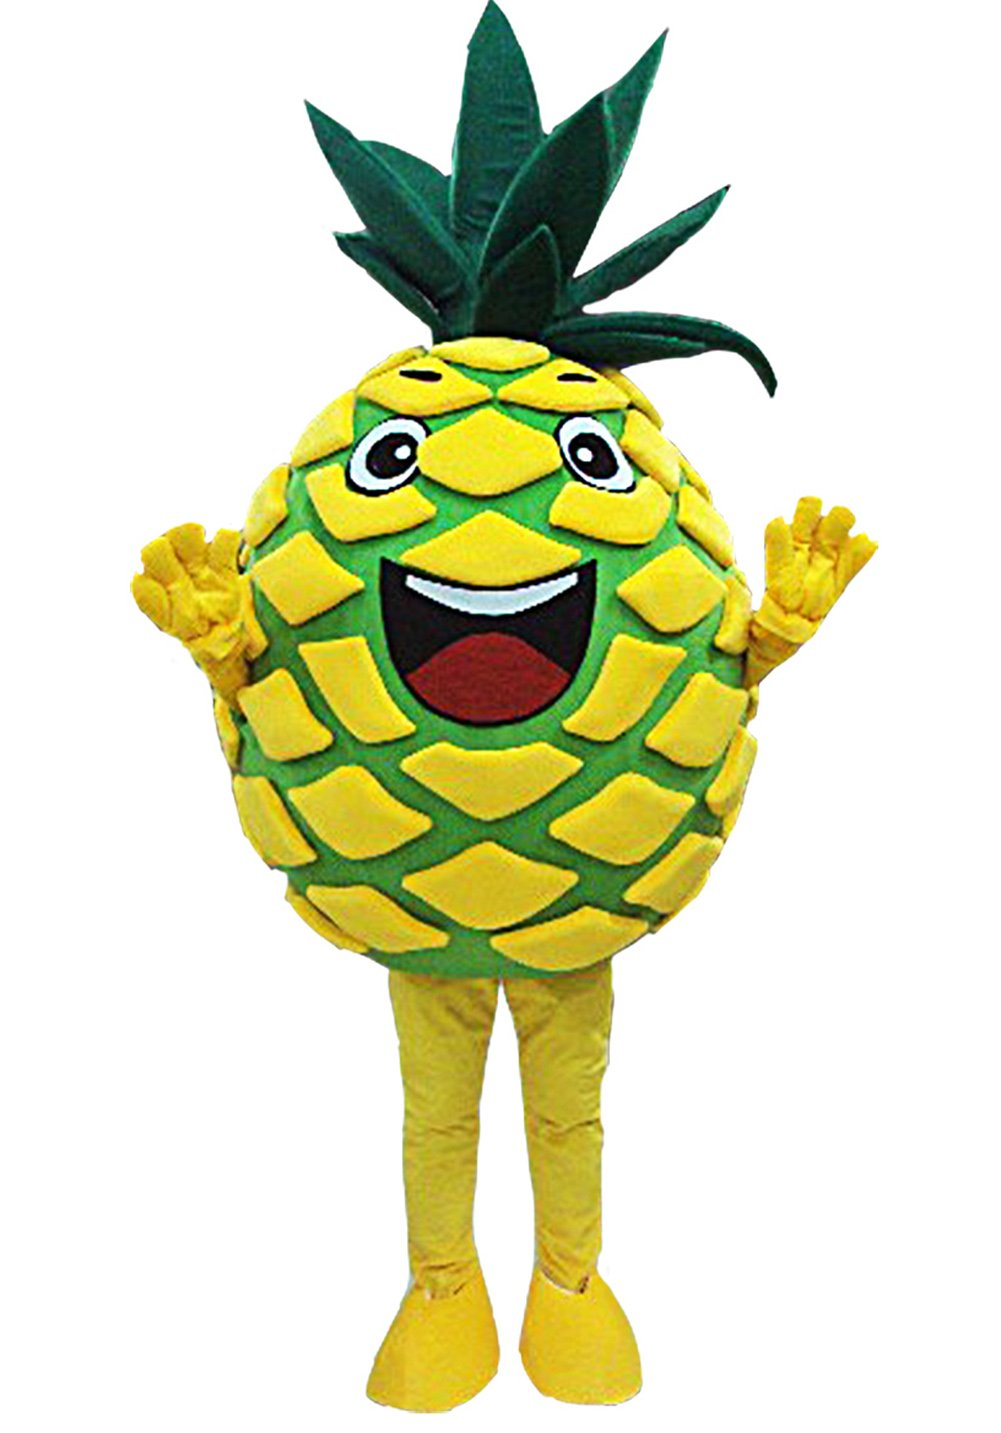 Pineapple Mascot Costume Pineapple Costume Adult Halloween Fancy Dress (Medium)